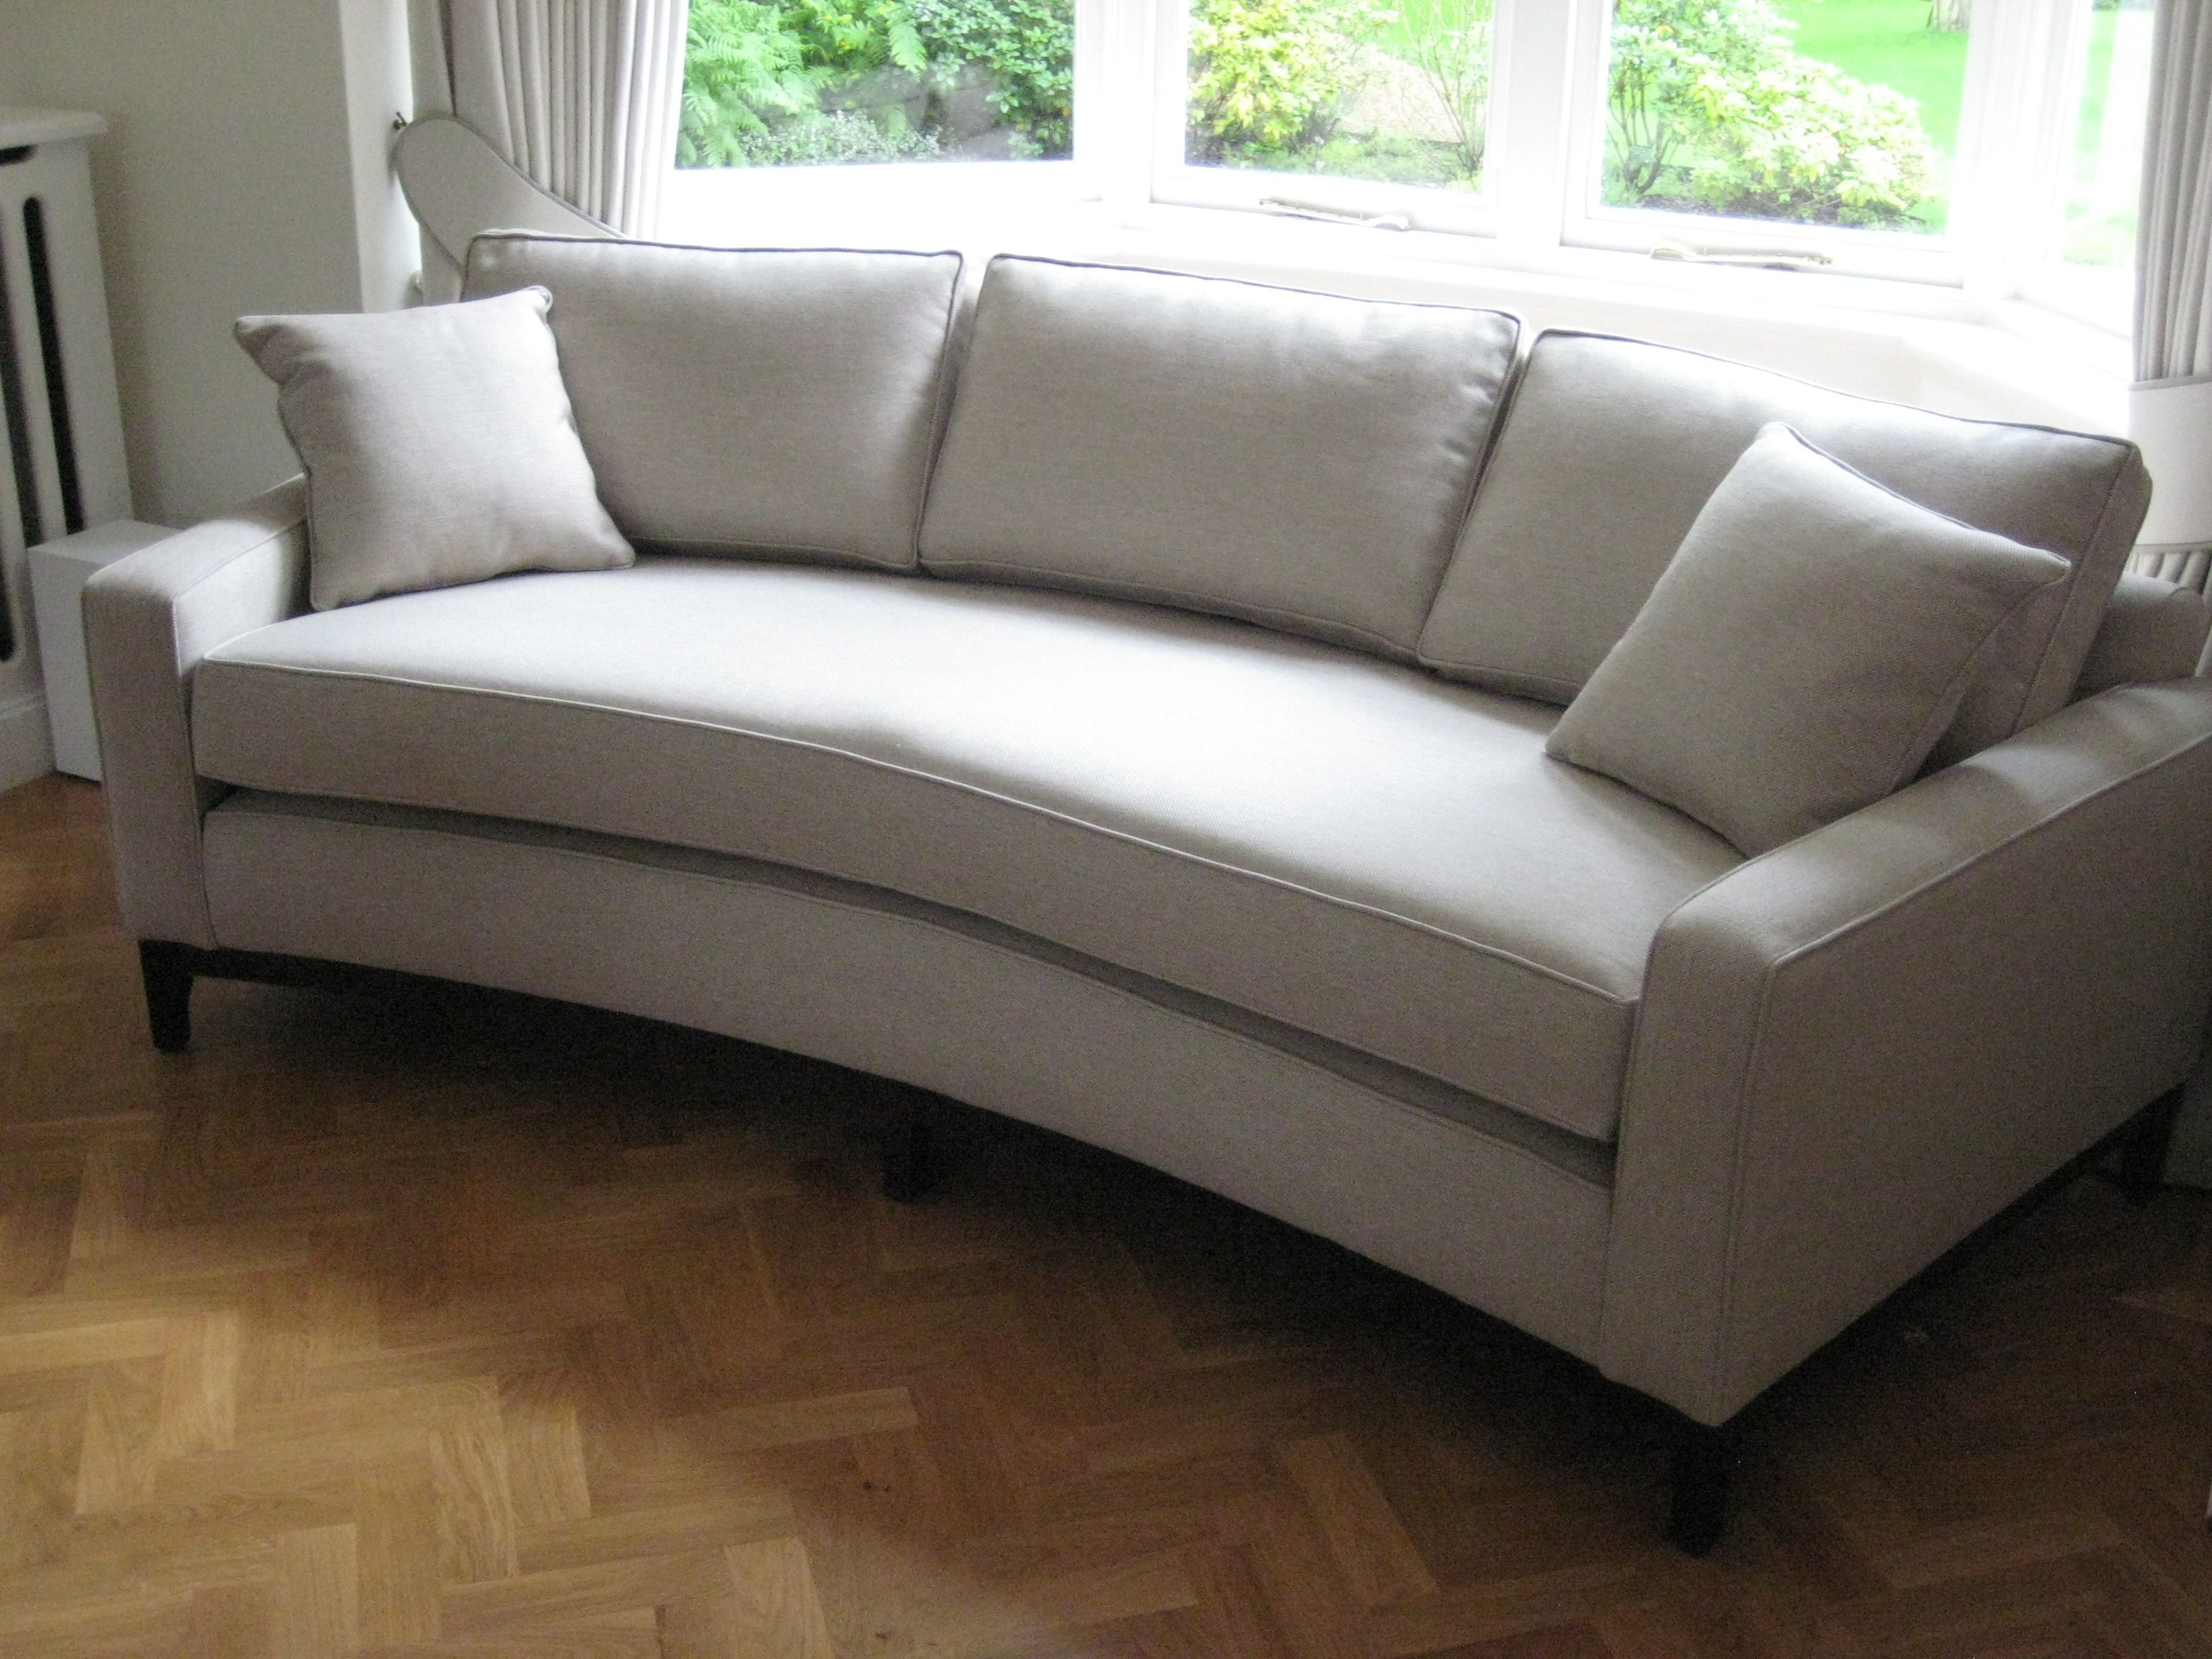 bay window sofa seating protaras bespoke curved perfect for a this has